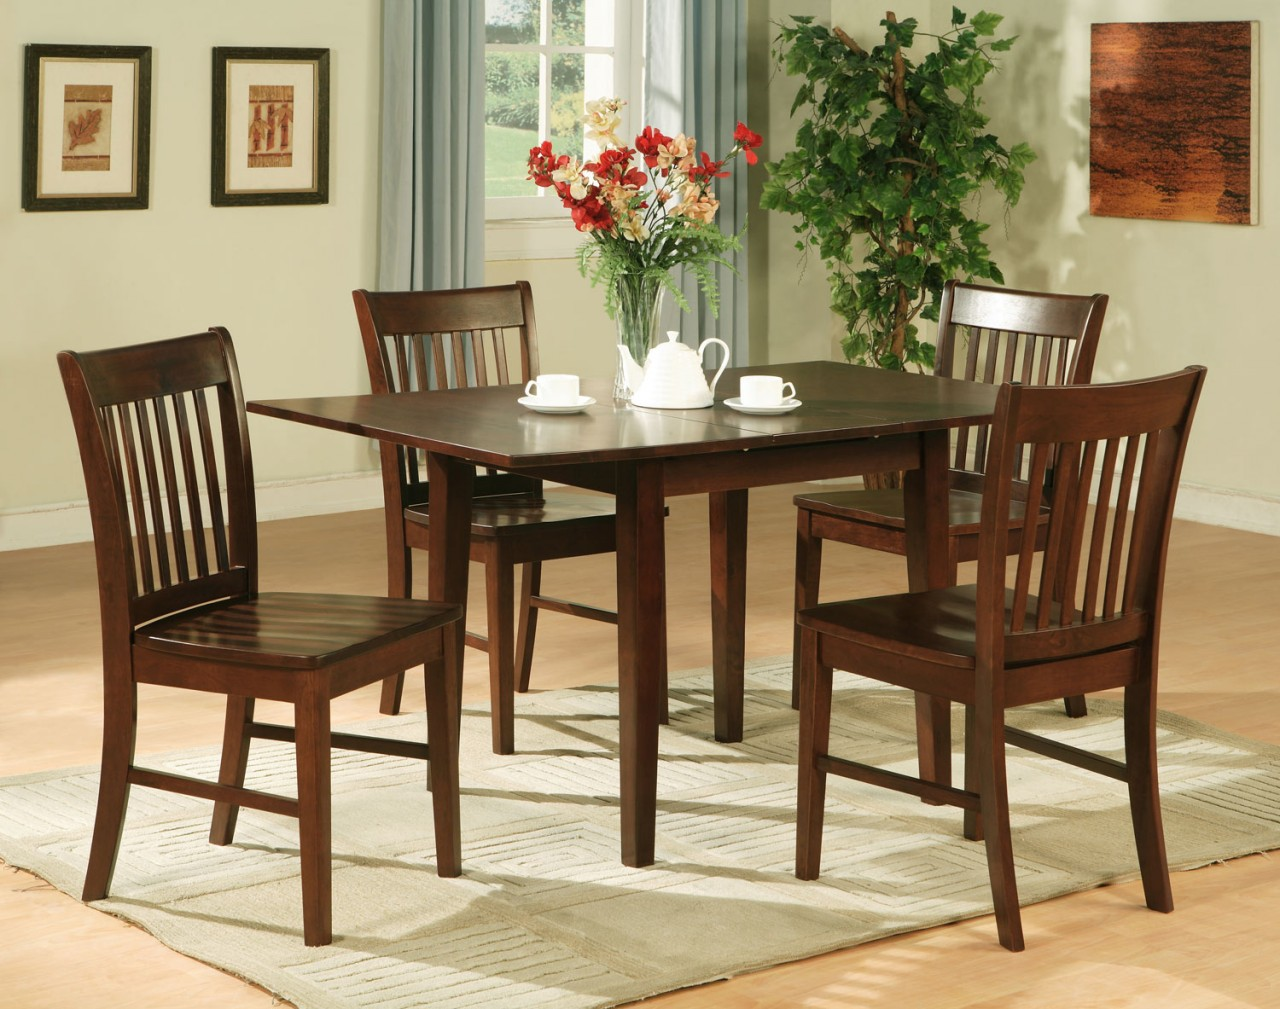 rectangular kitchen table kitchen tables and chairs Rectangular kitchen table Photo 4